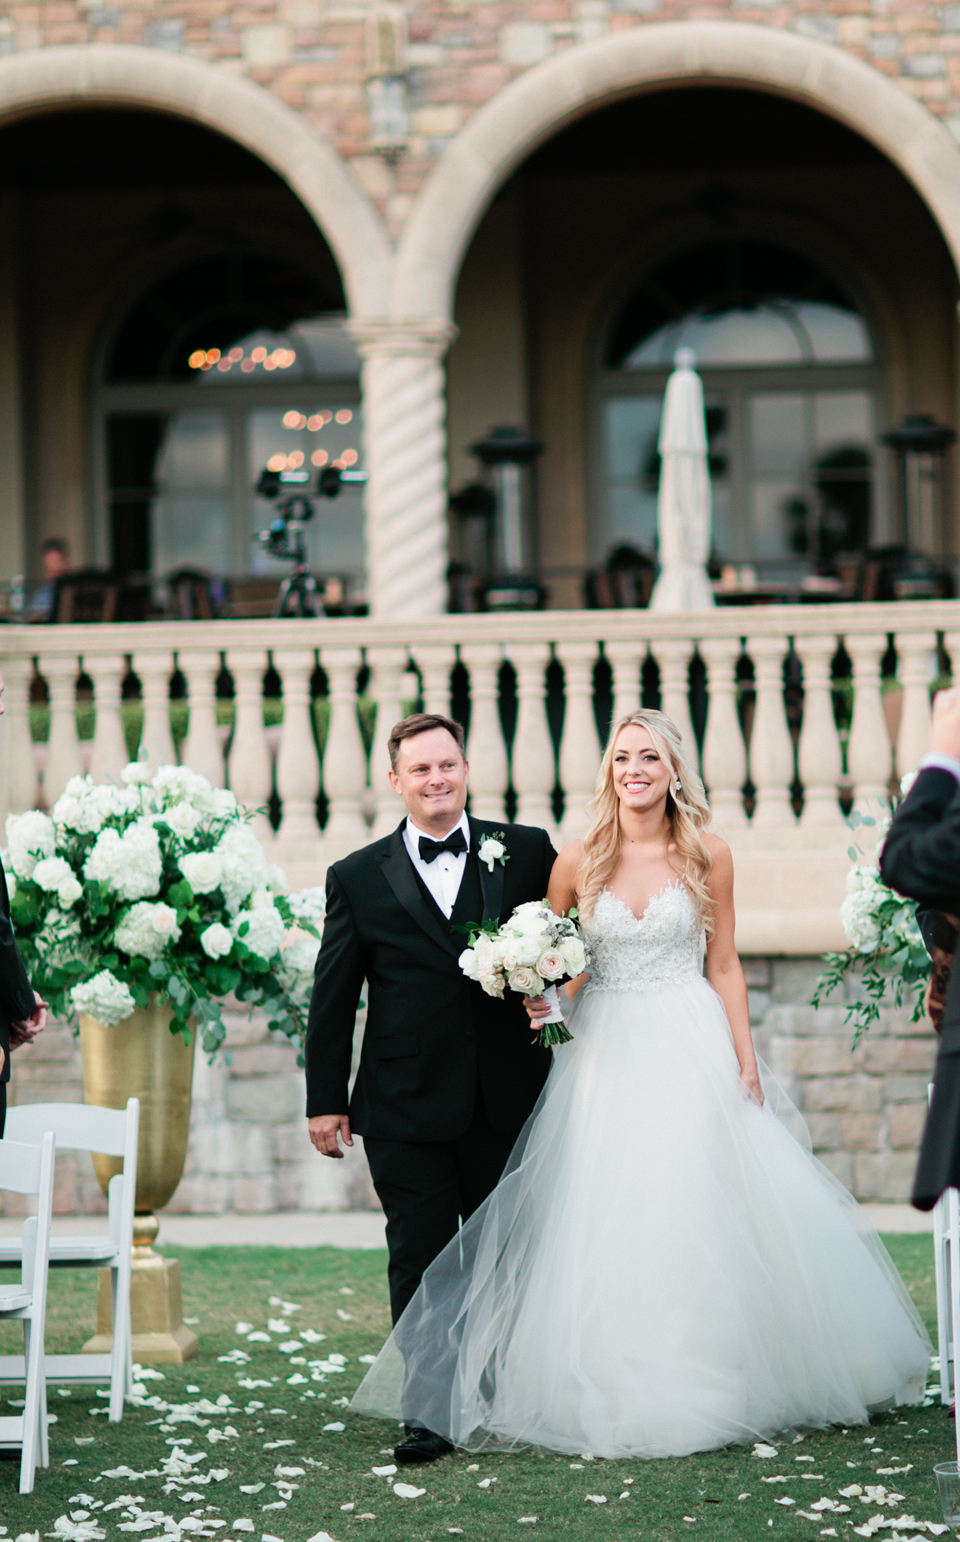 Picture of a father walking his daughter down the aisle on the wedding day.  The wedding is at TPC Sawgrass in Ponte Vedra, Florida